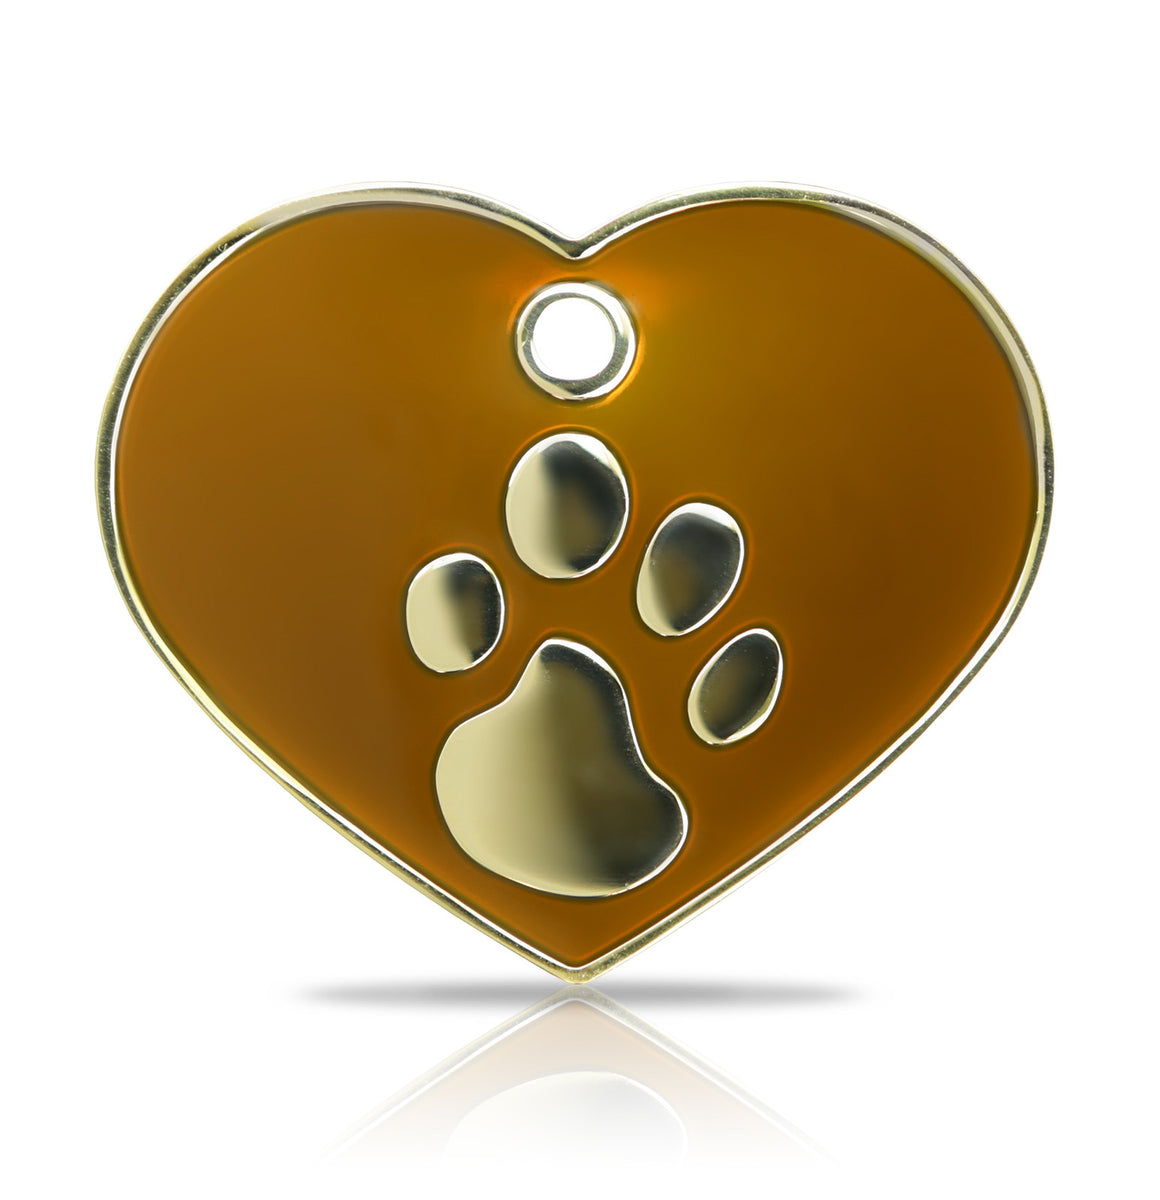 TaggIT Elegance Tag Large Heart Brown & Gold Pet Tag iMarc Tag